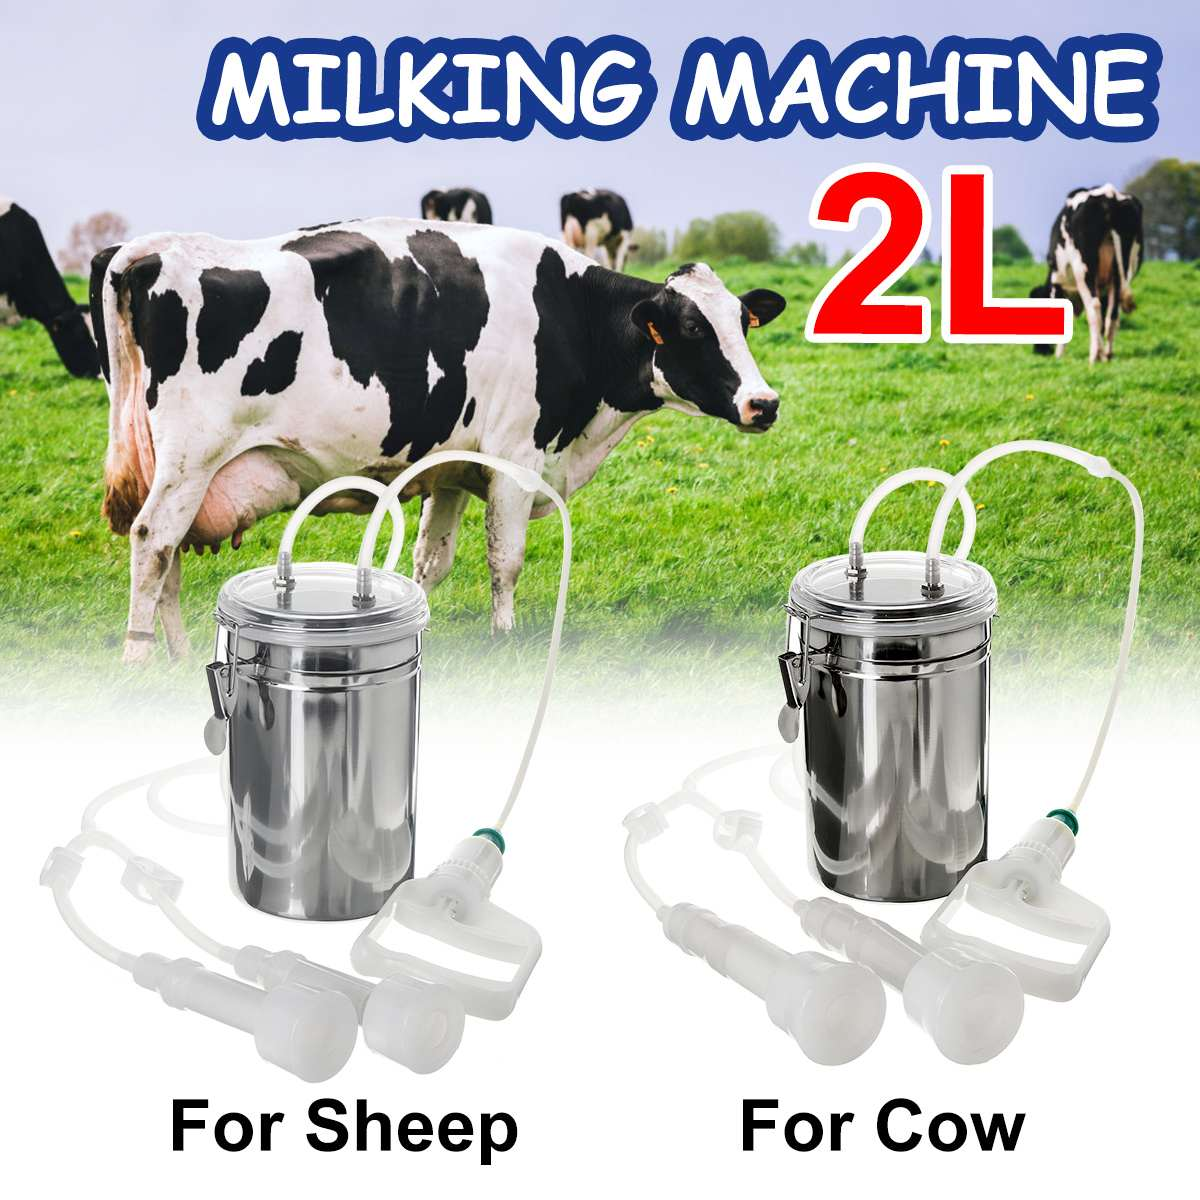 Milk Milking Machine Extracting Portable Pump Equipment Accessories Cow Goat